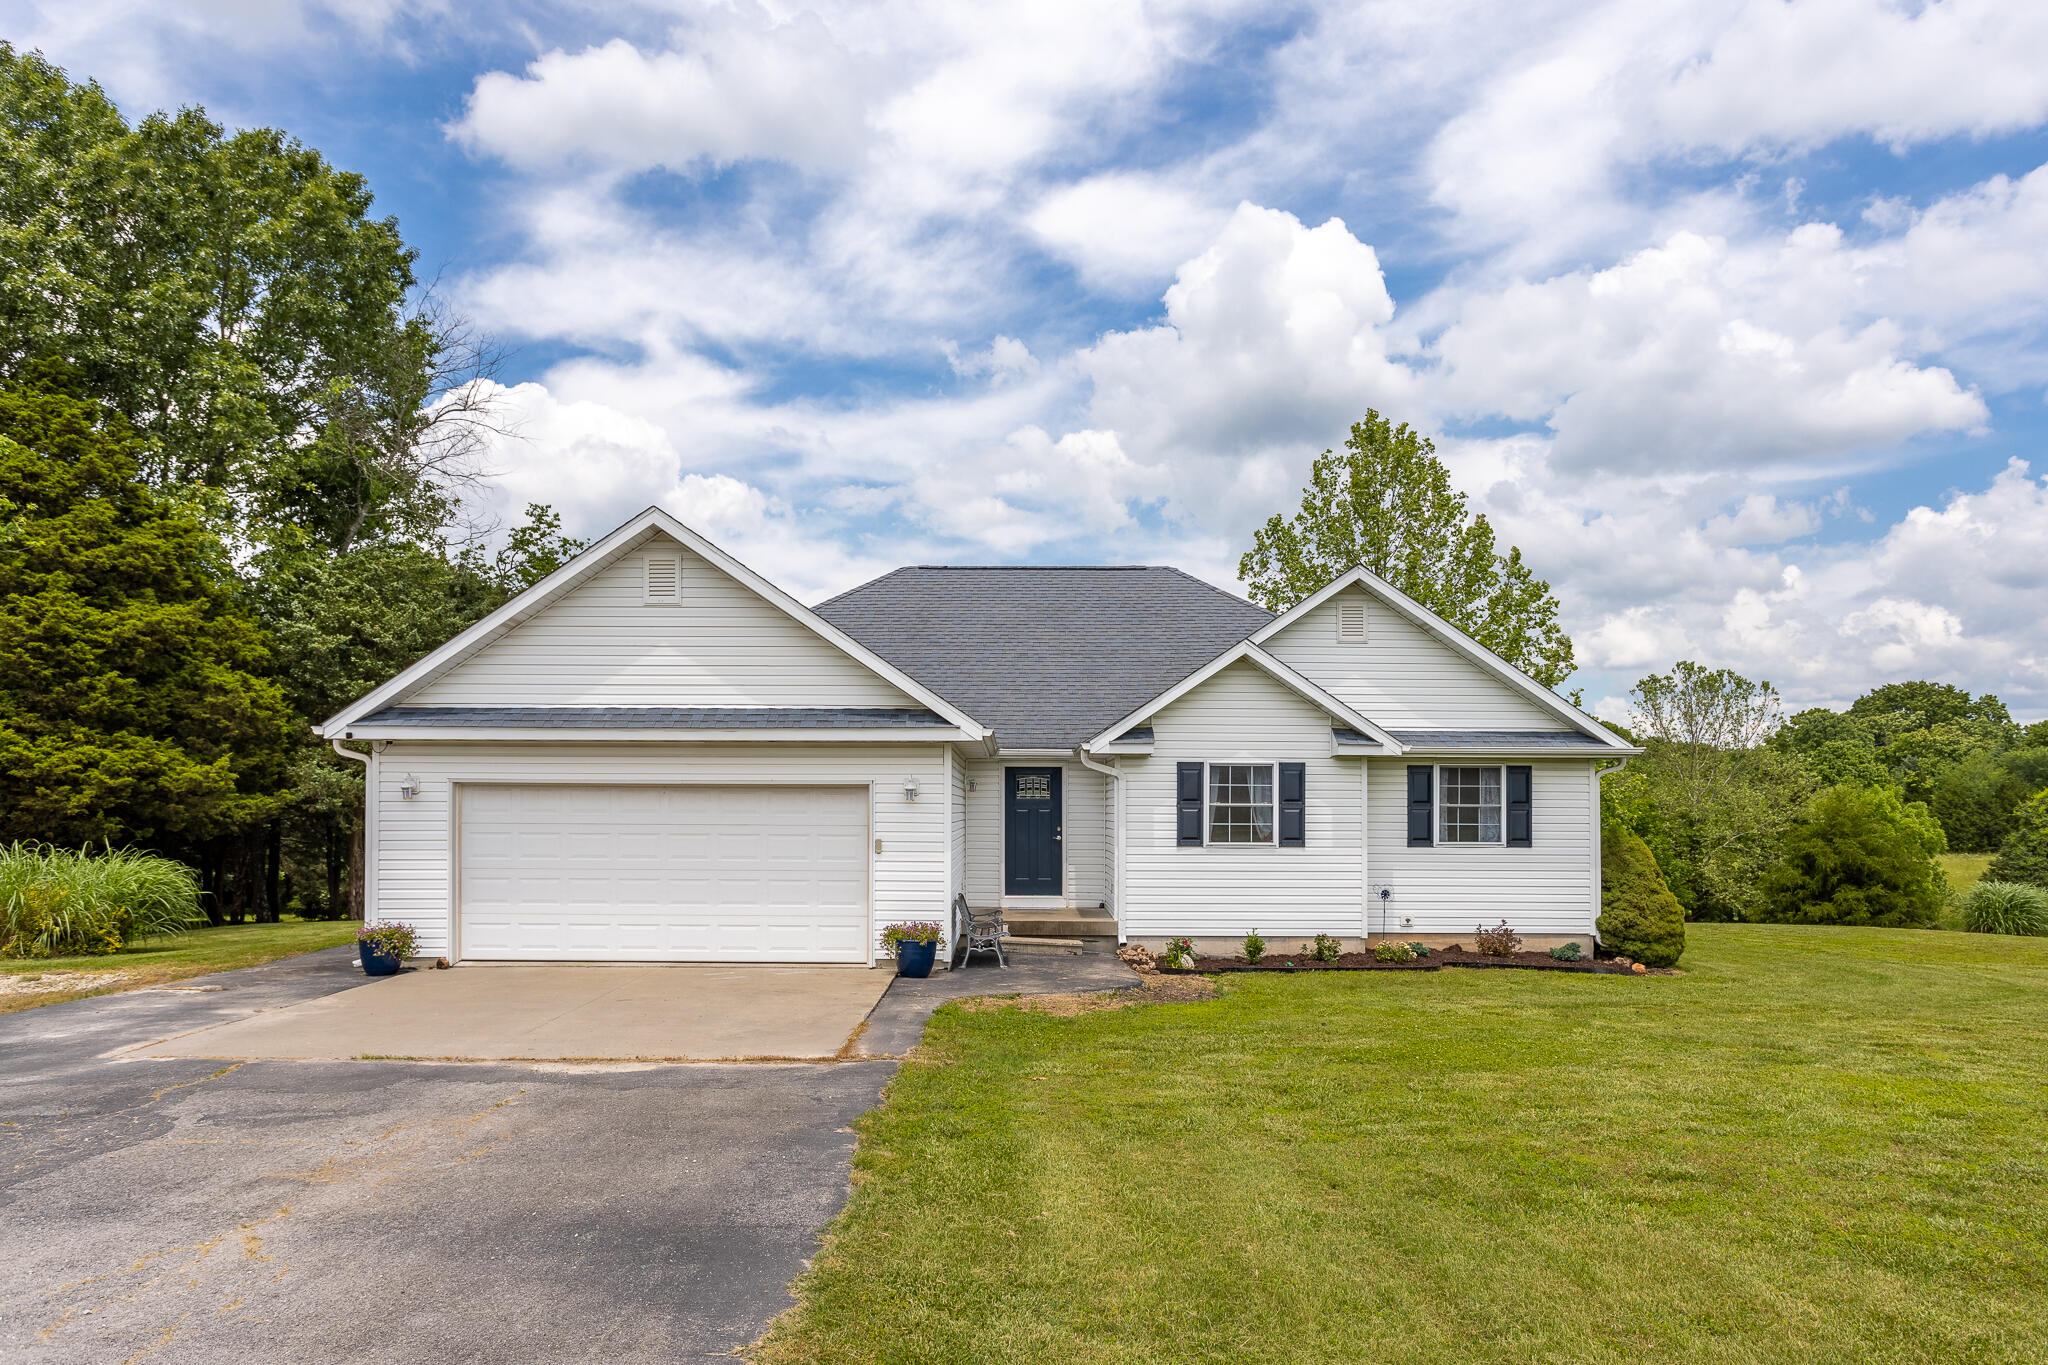 3337 South 35th Road Humansville, MO 65674